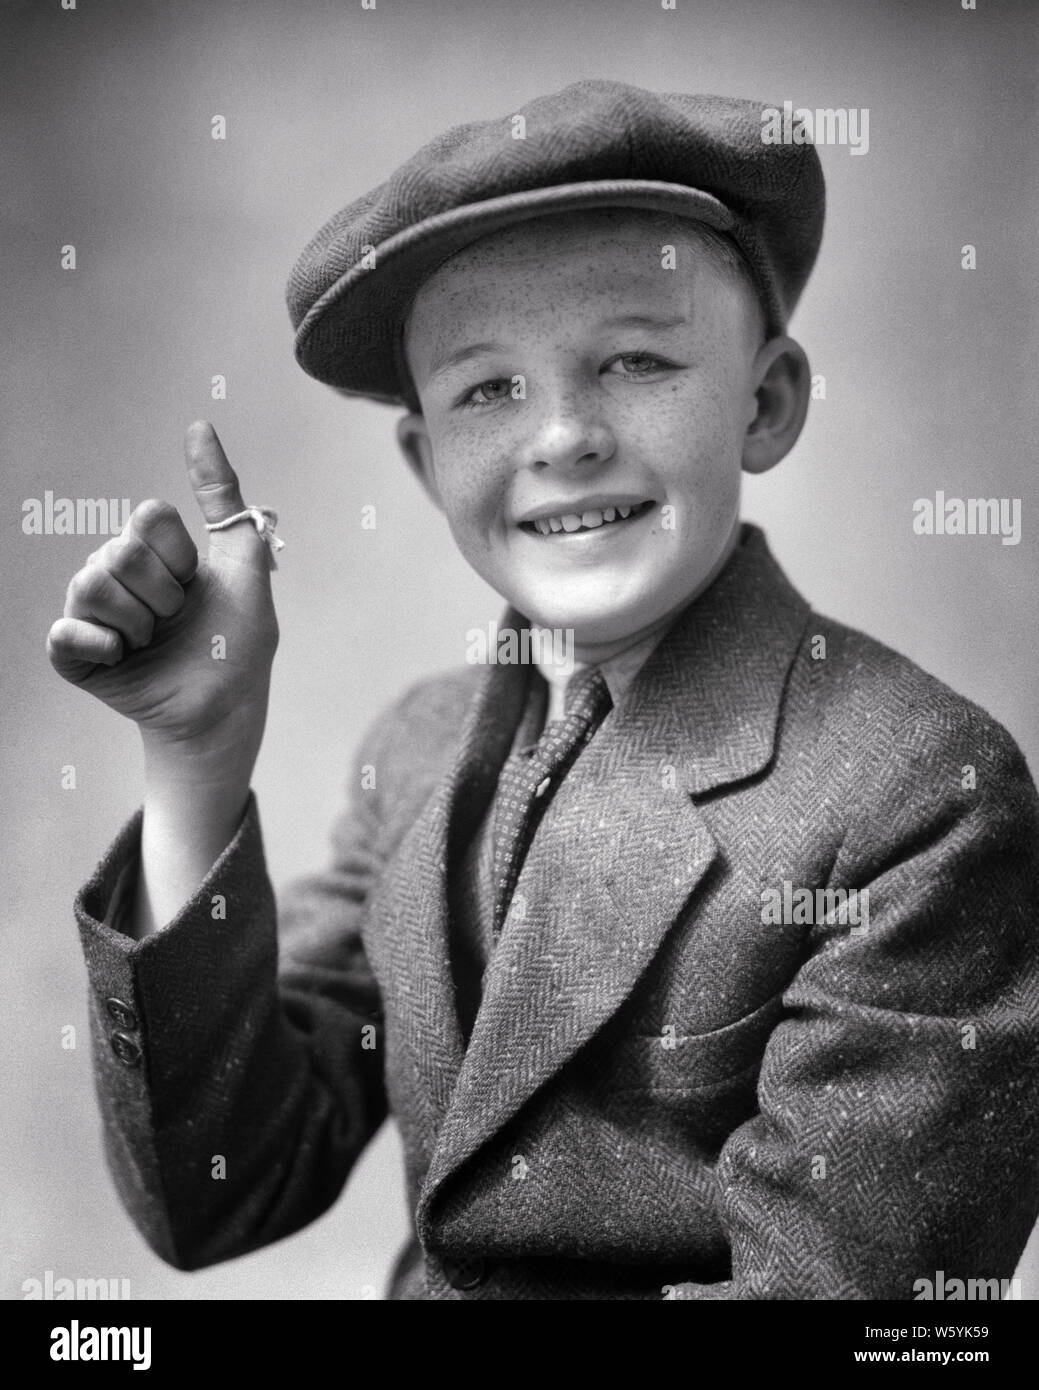 Suit Hat 1930s High Resolution Stock Photography And Images Alamy